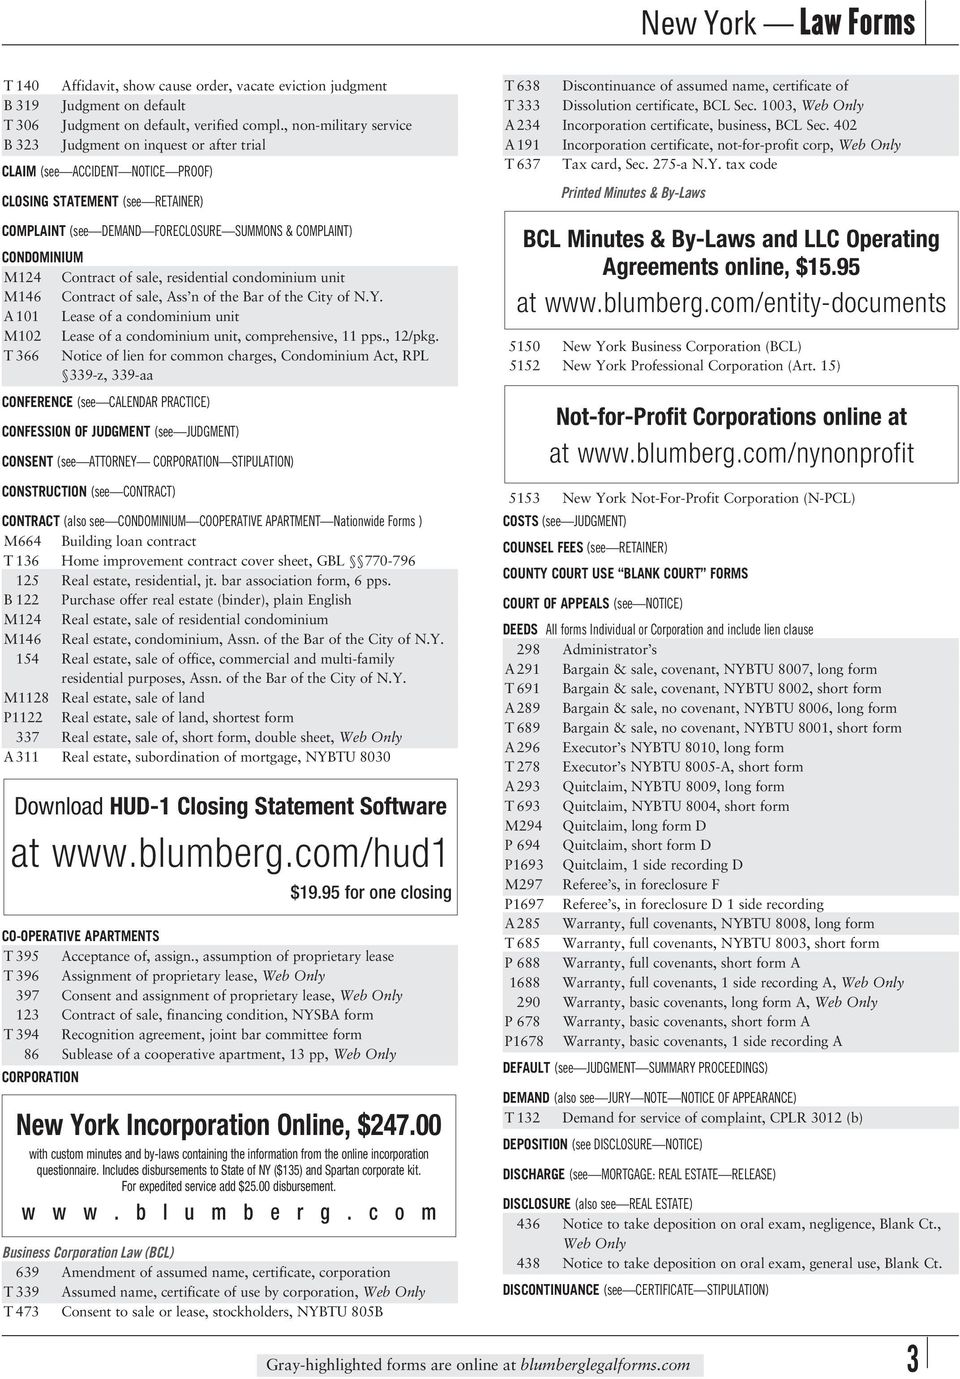 New York State Llc Operating Agreement Template Filetype ...